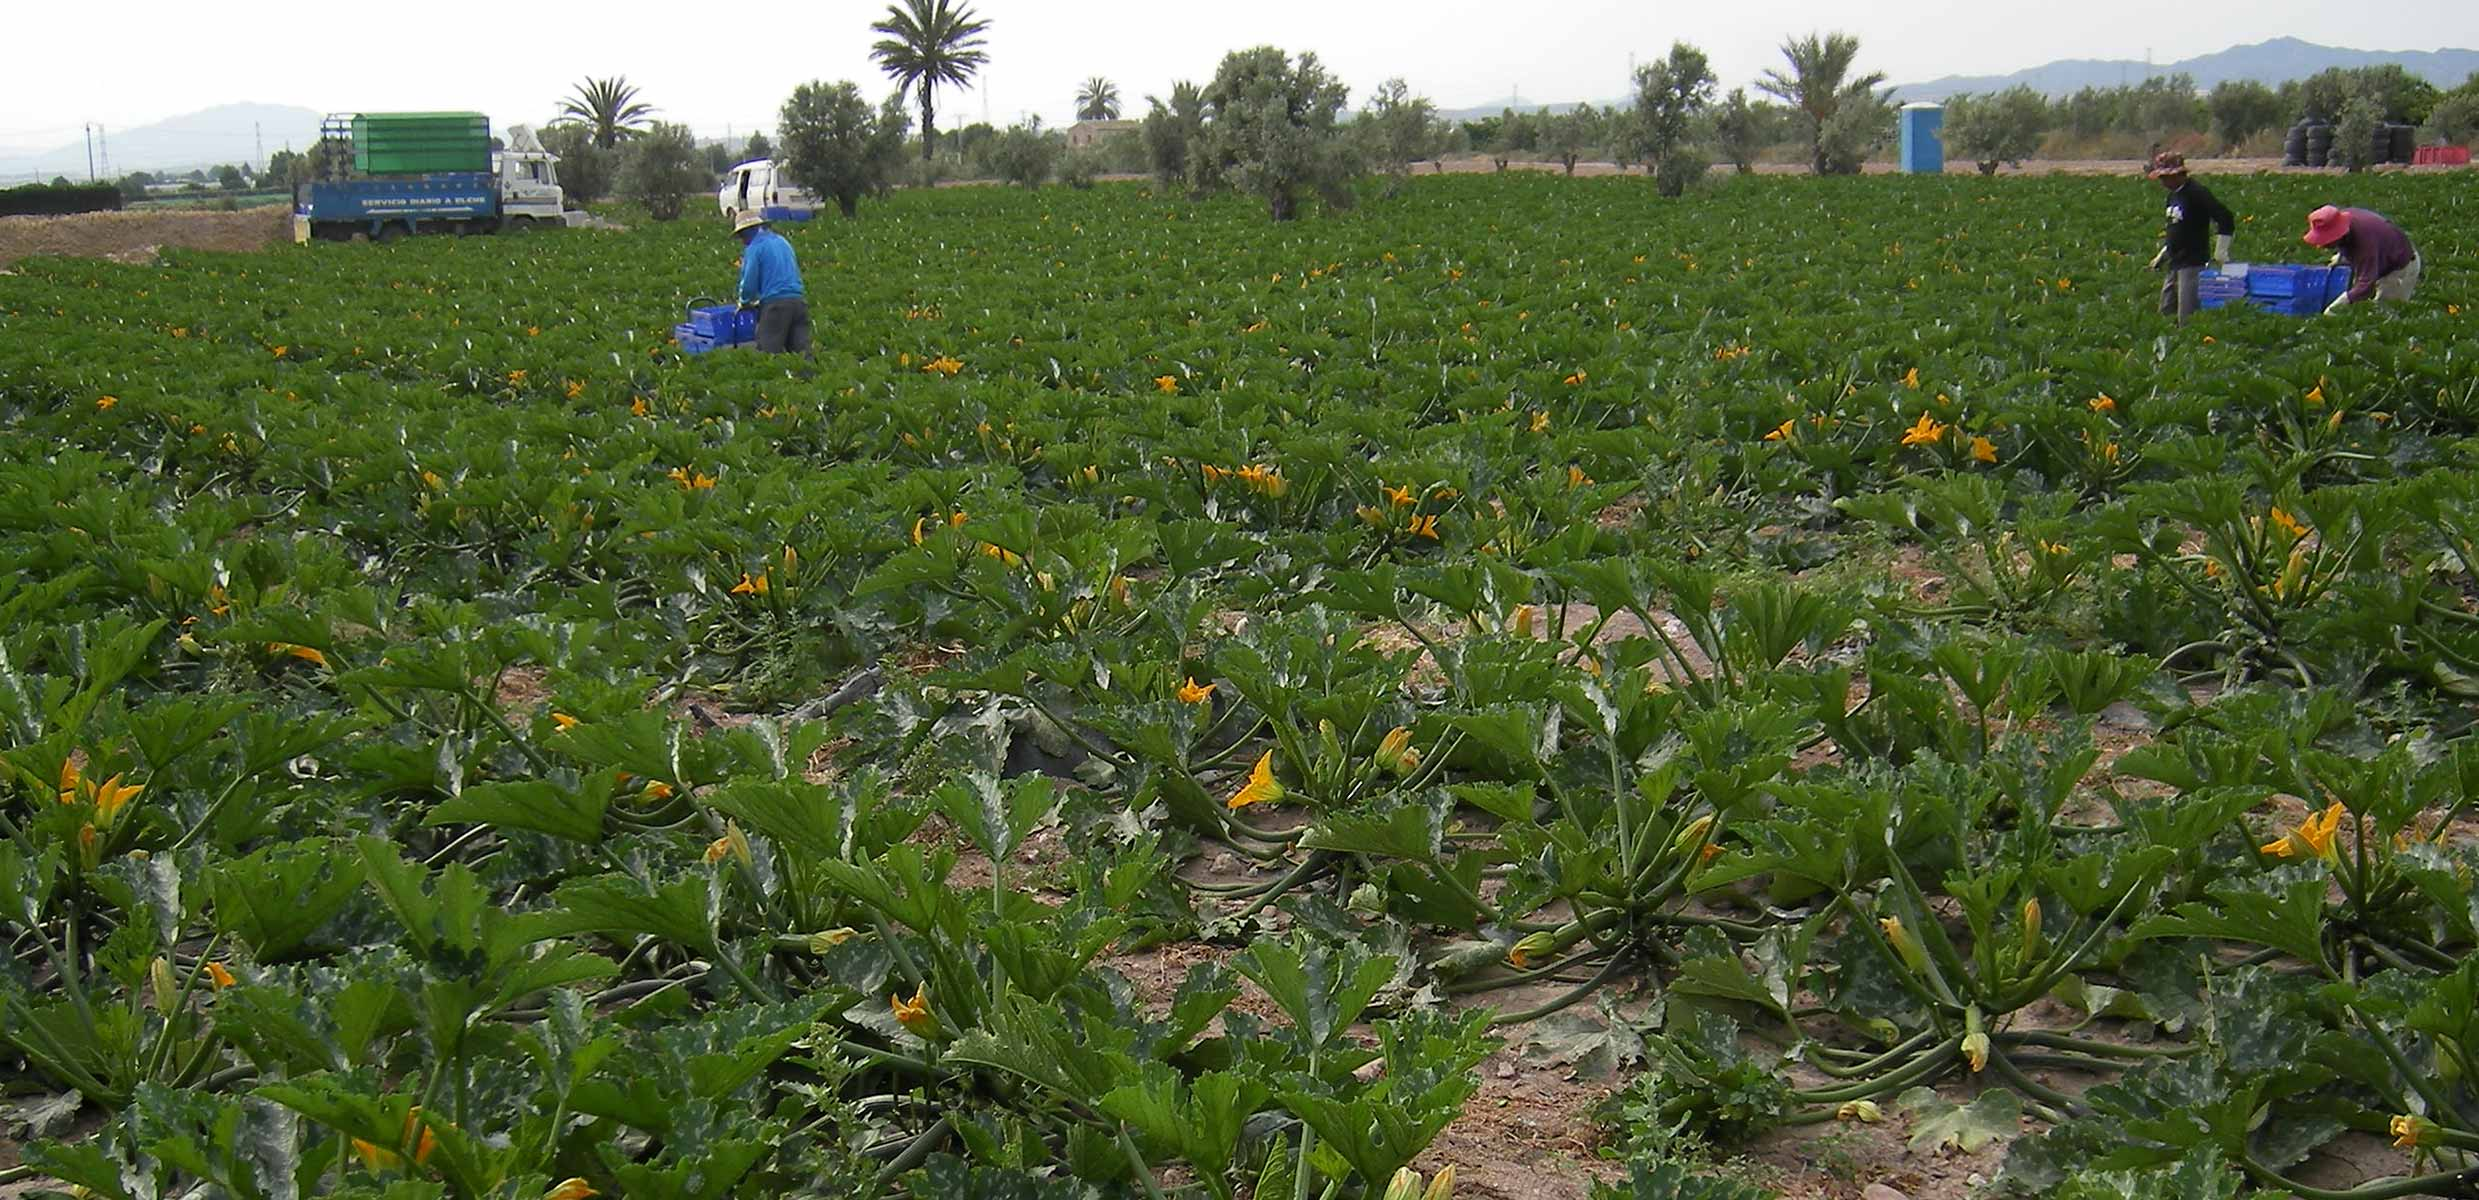 Photography of courgettes being harvested by hand by Barfoots España in Almeria